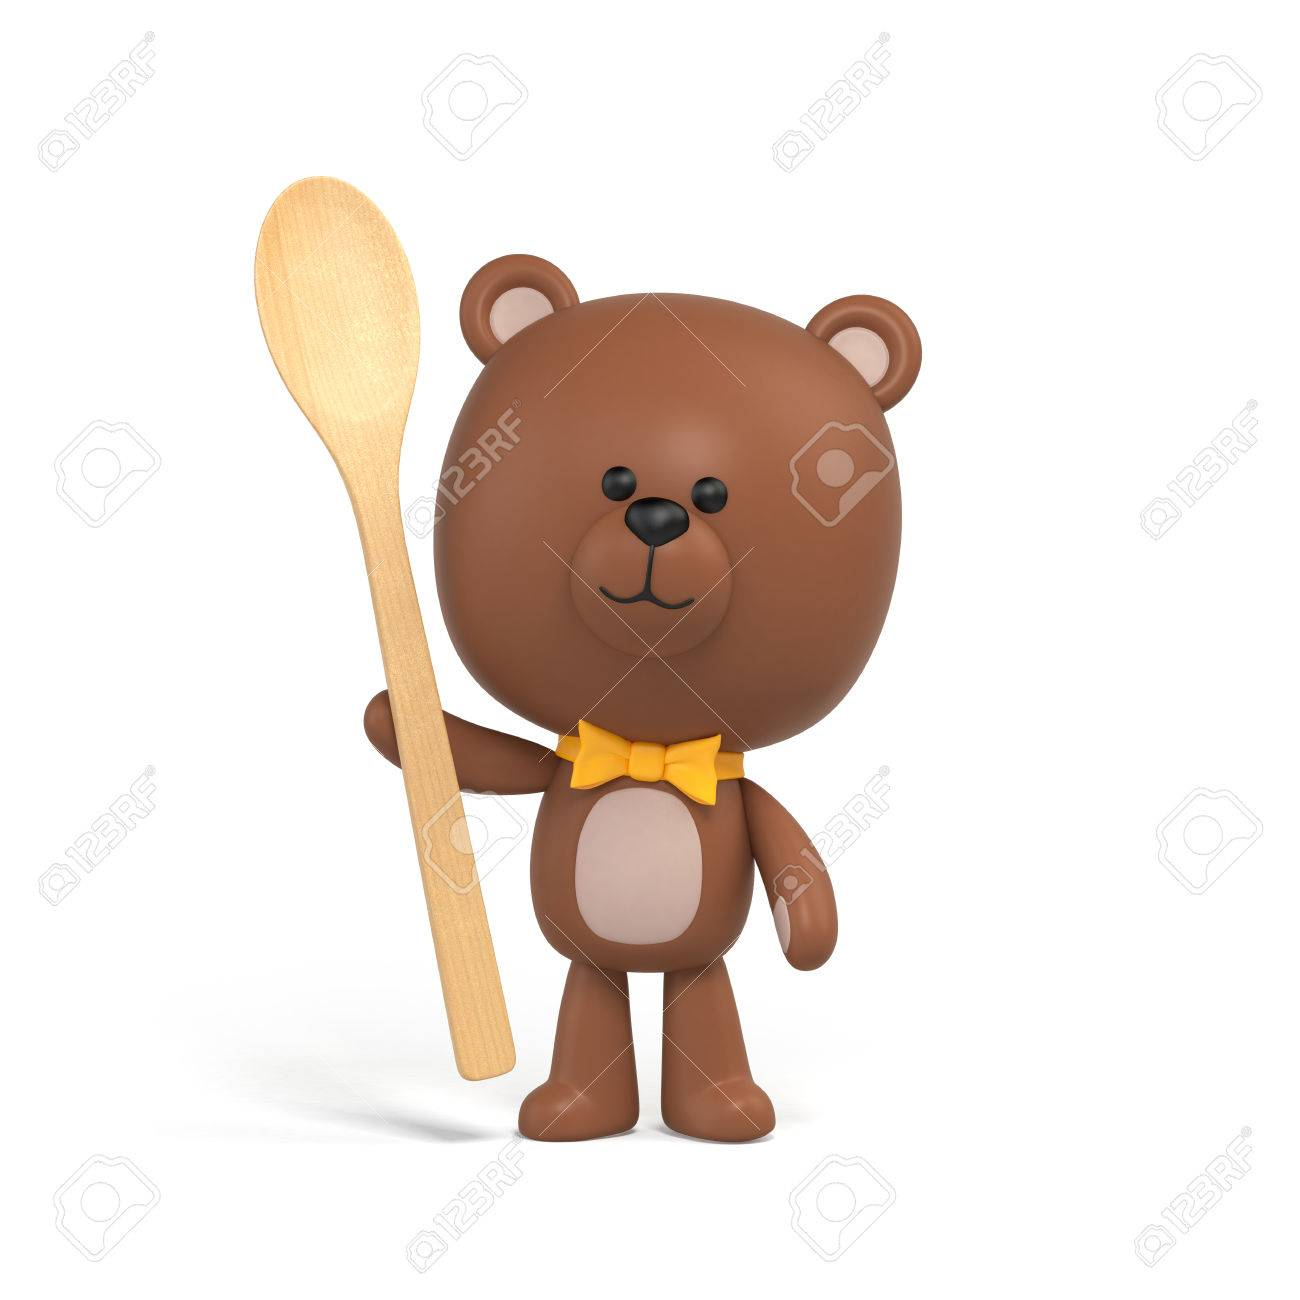 1300x1300 Chocolate Teddy Bear Holding Wooden Spoon, Illustration, Toy